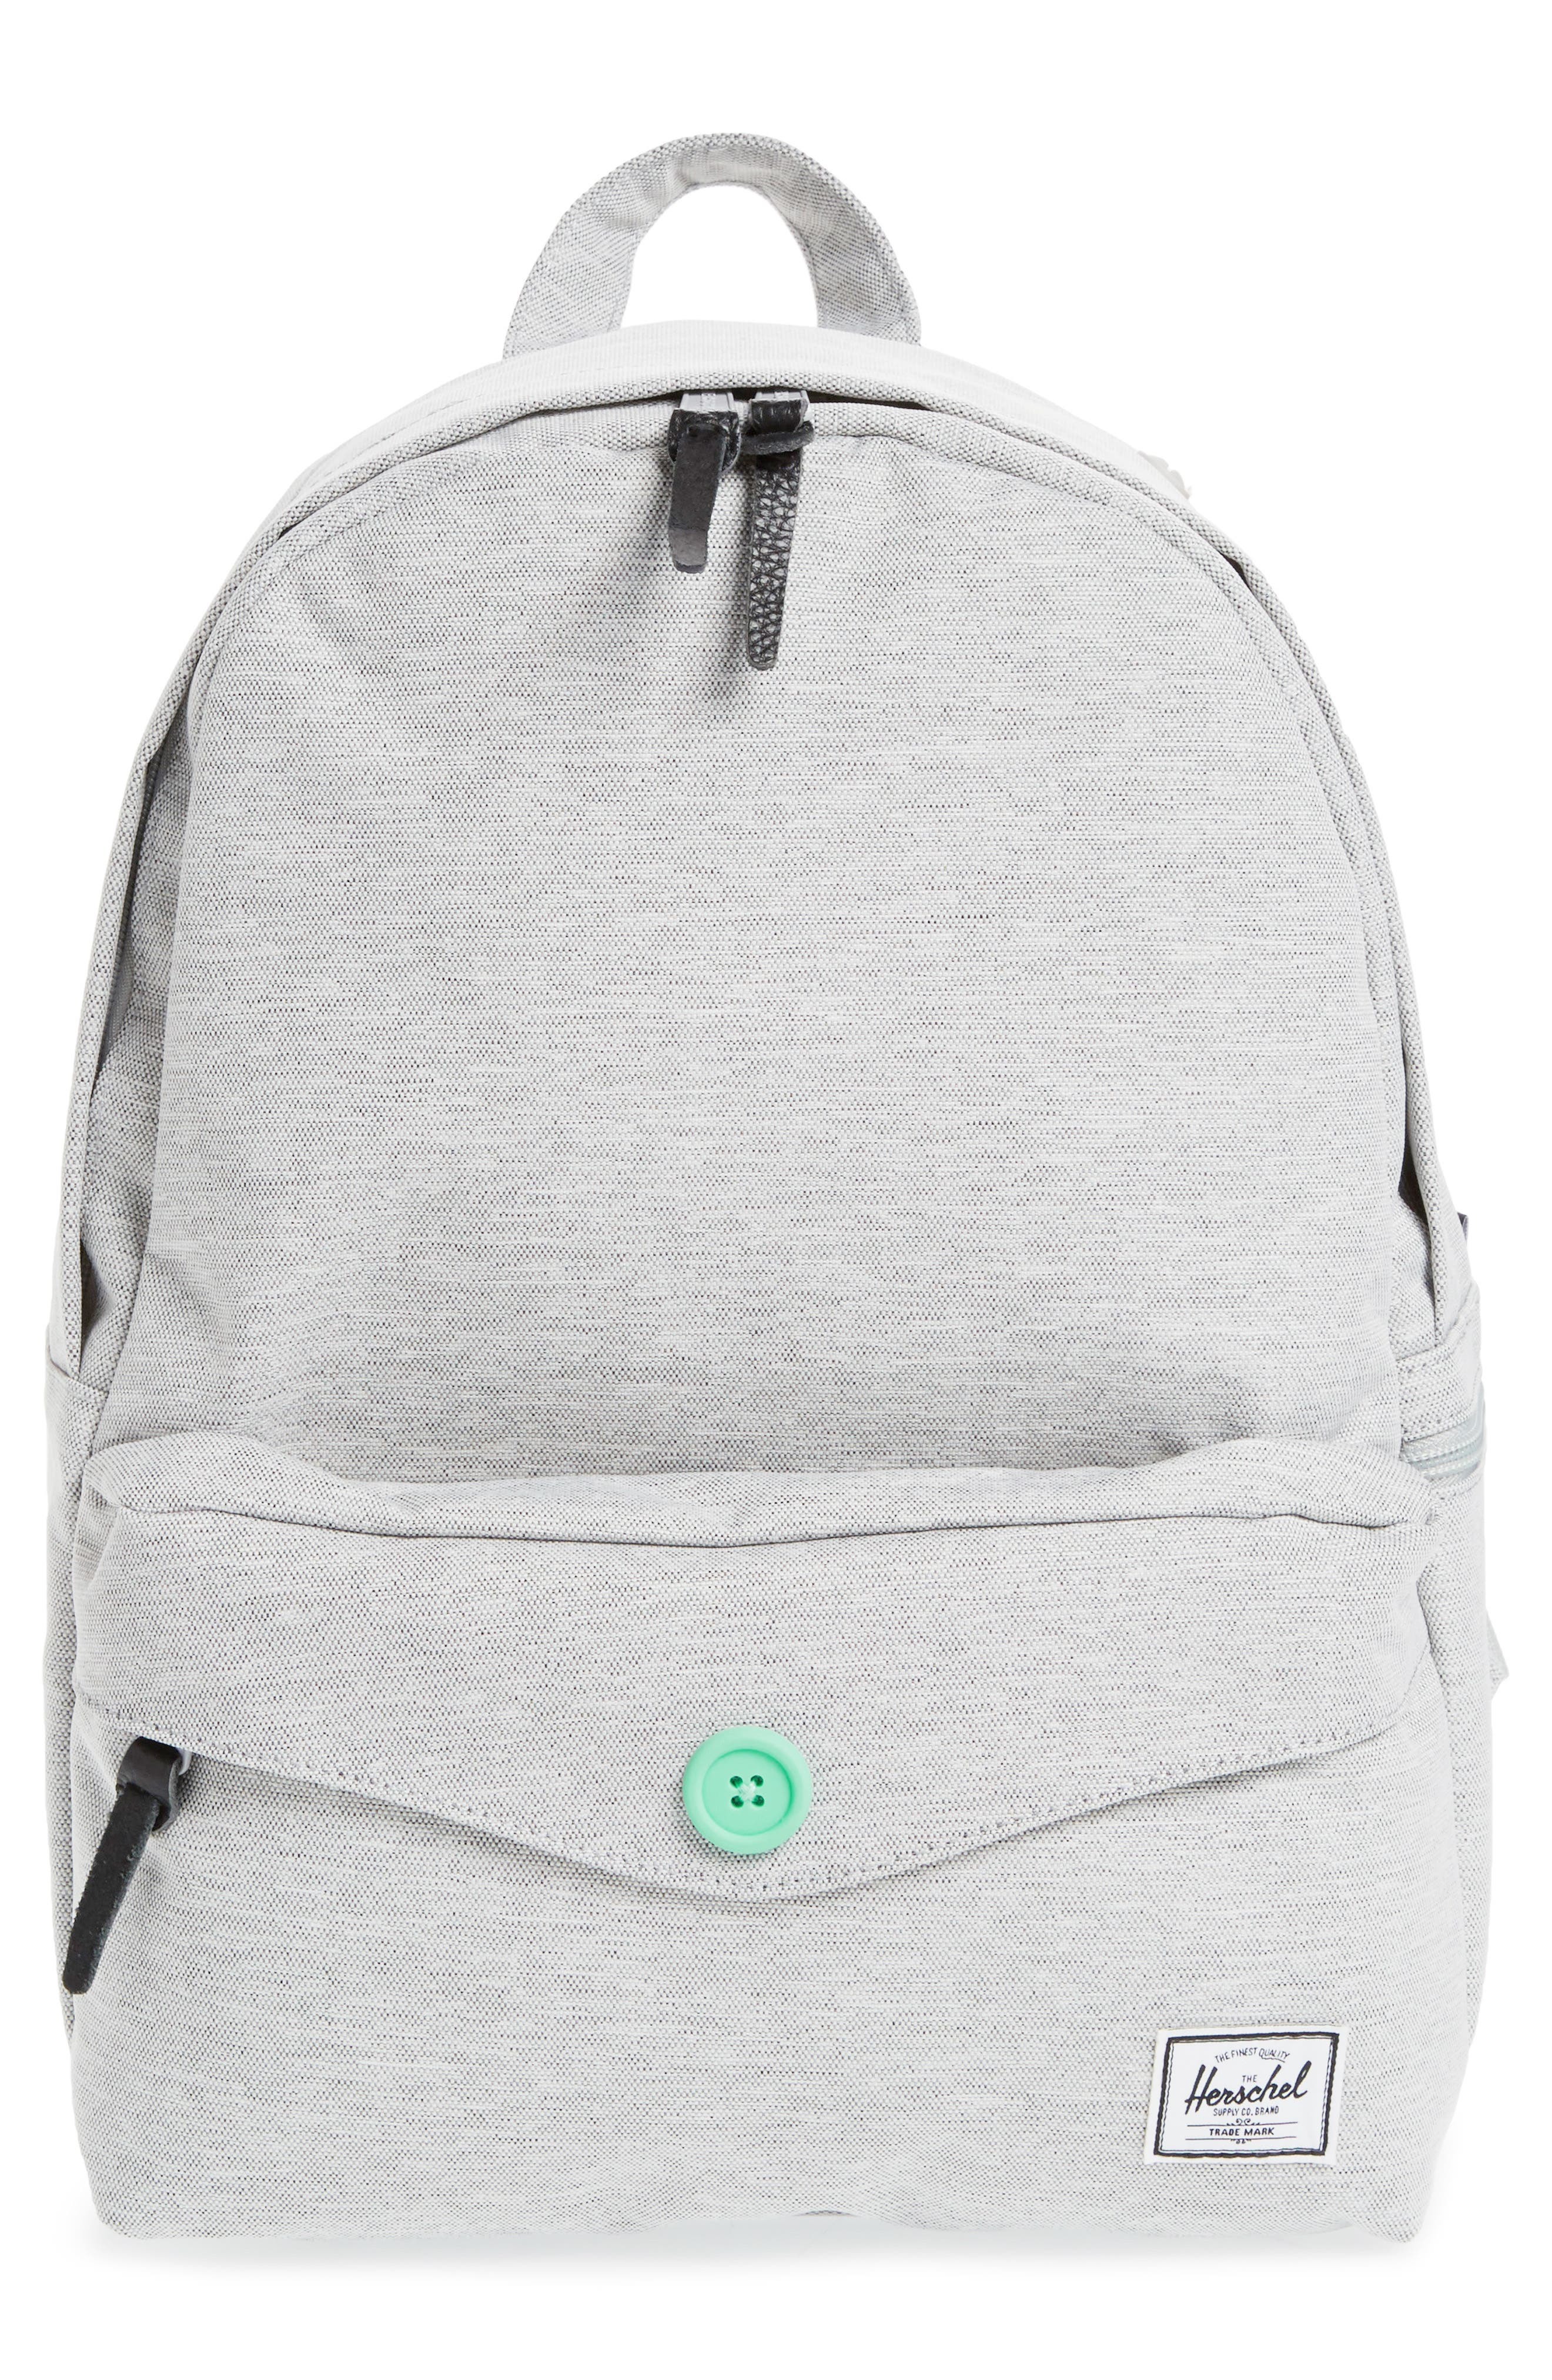 Main Image - Herschel Supply Co. 'Sydney' Backpack